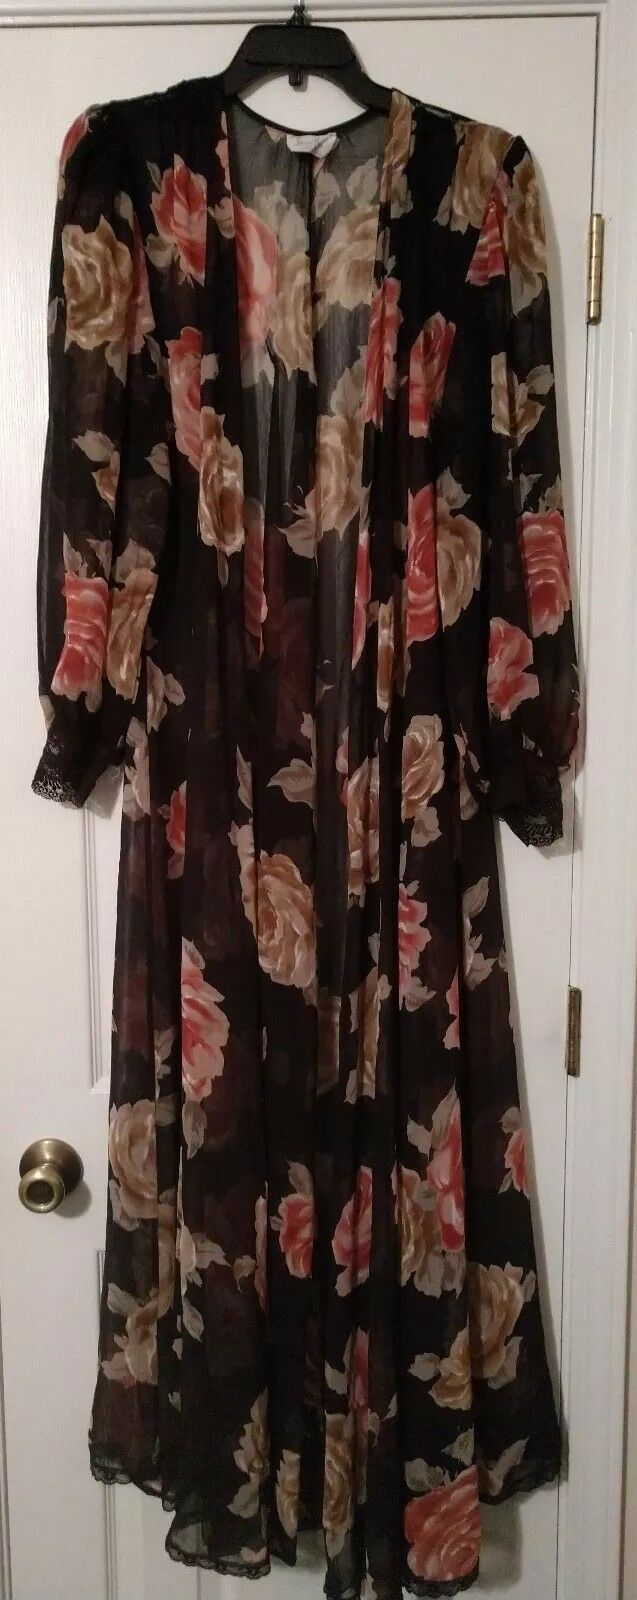 Lucie Ann Vintage Floral Sheer Size Small  - image 1